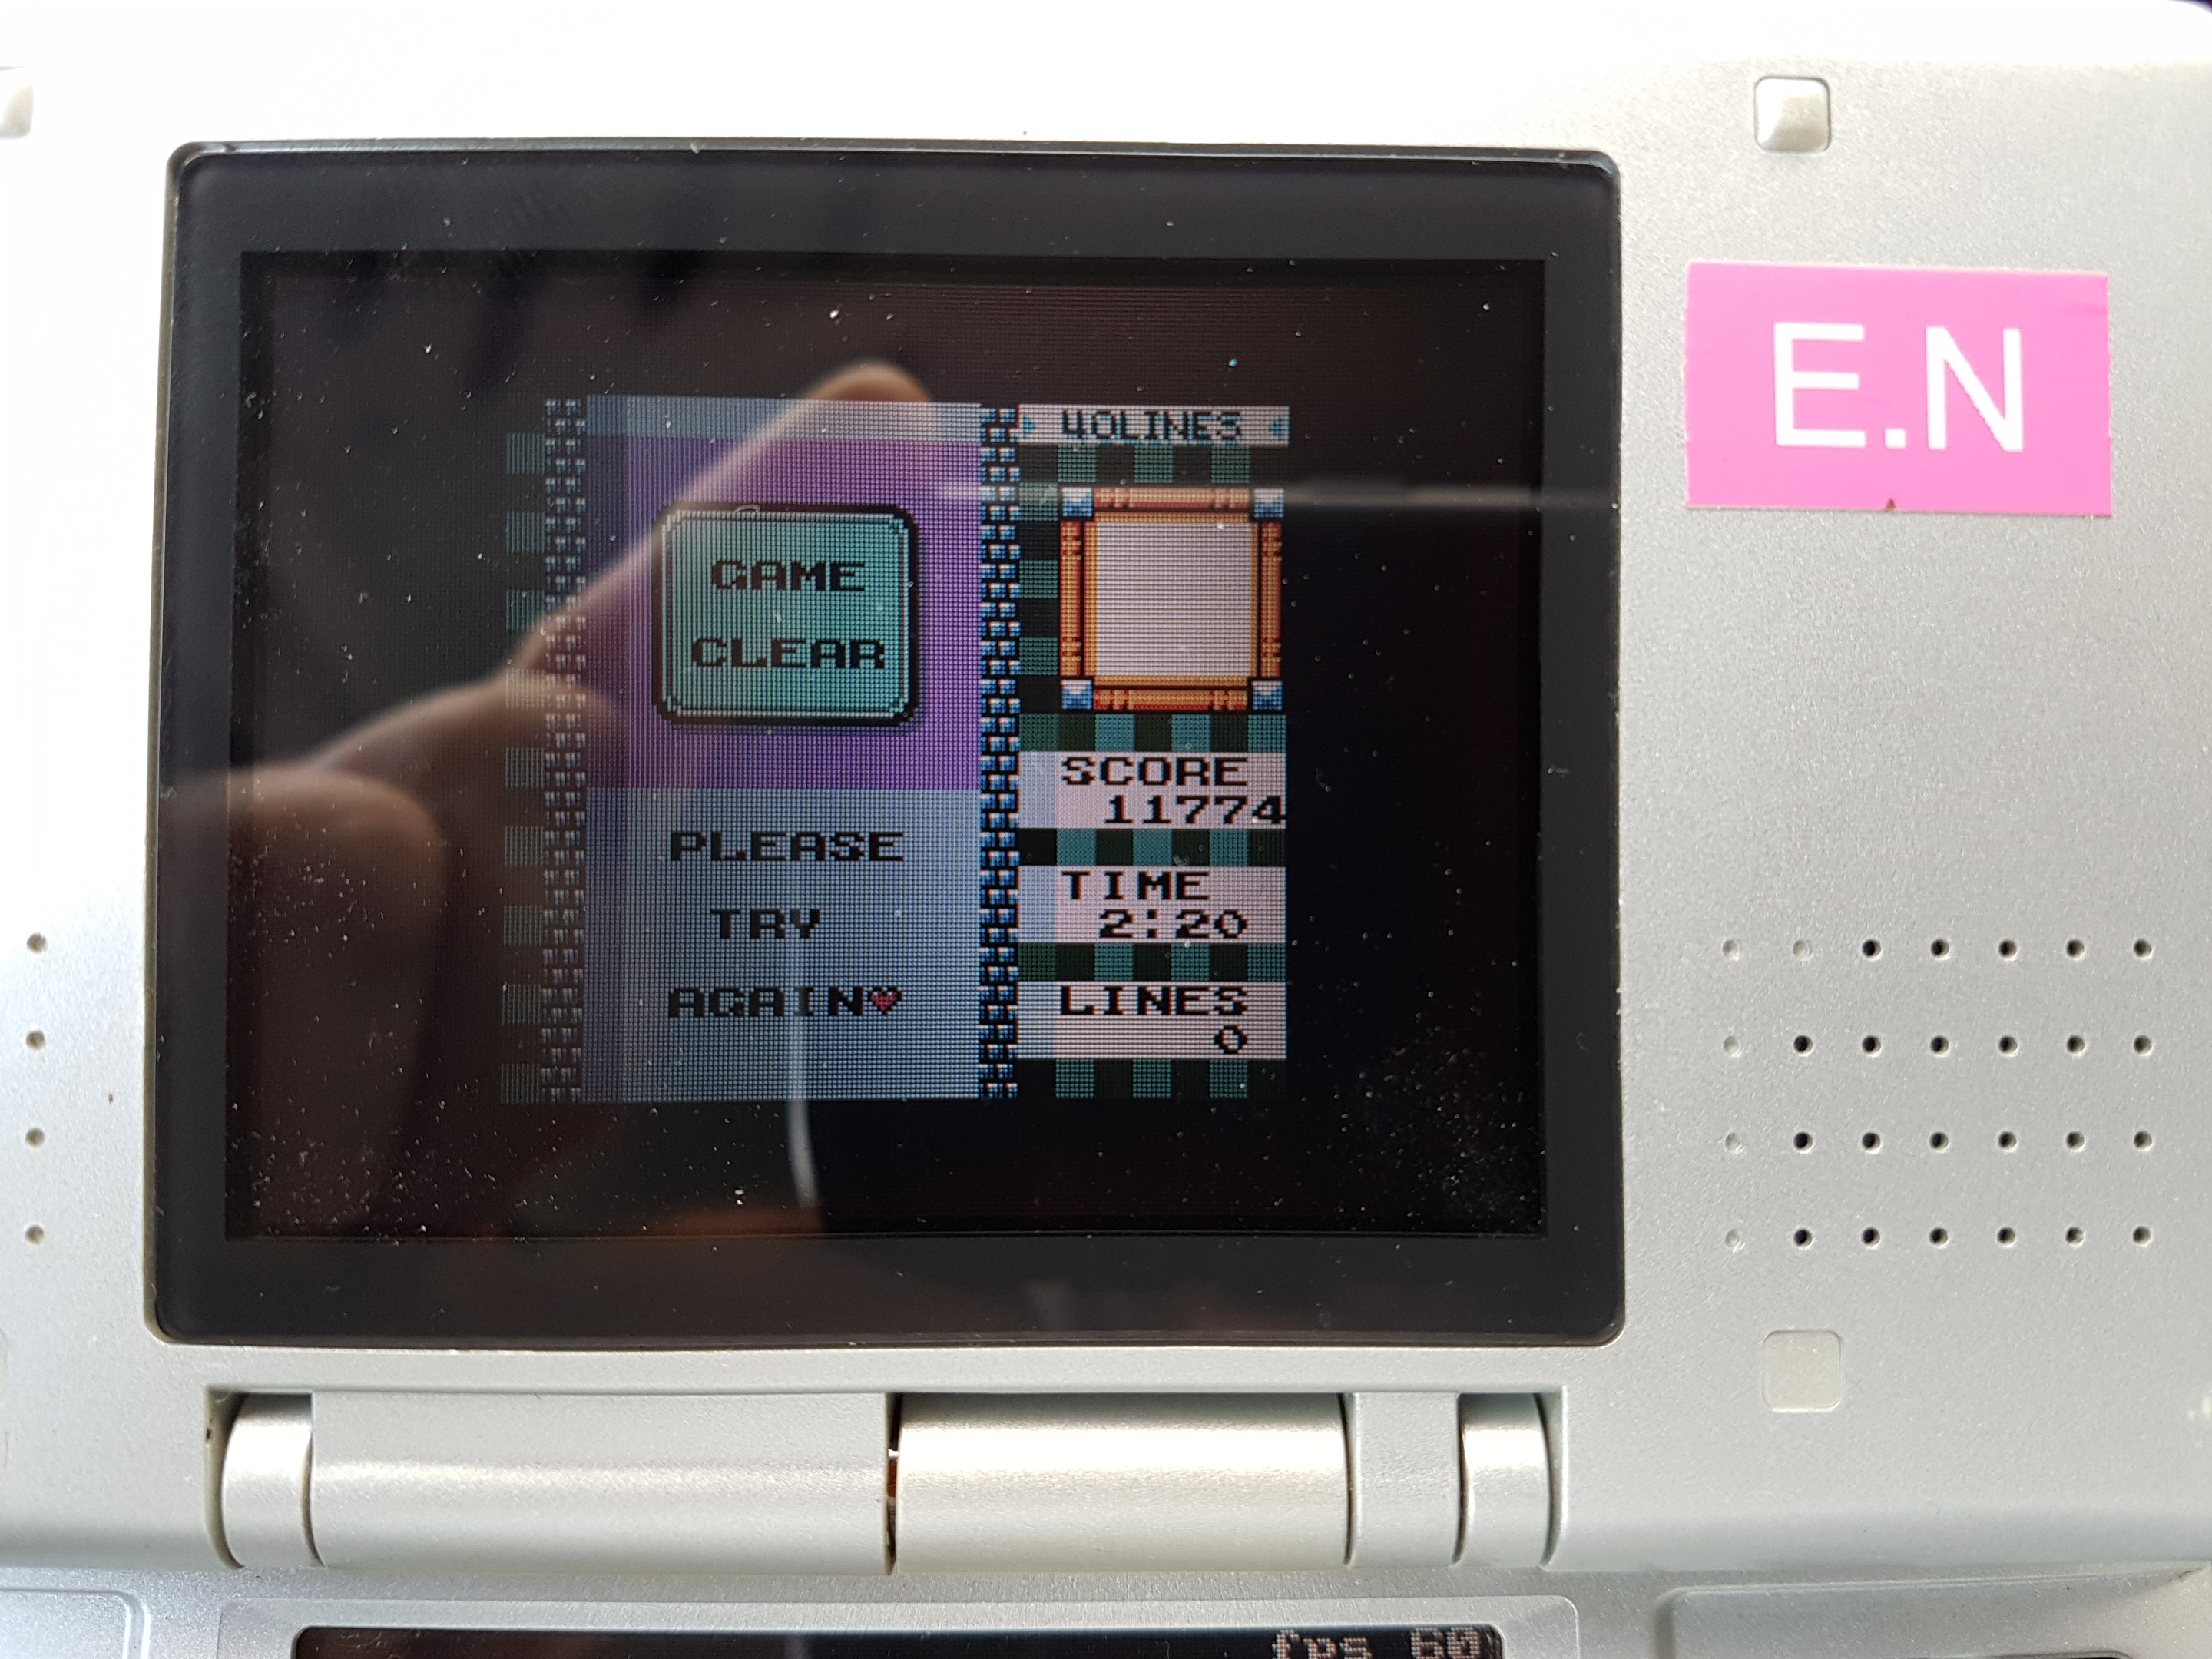 EddieNiceguy: Tetris DX: 40 Lines [Level 3/Height 5] (Game Boy Color Emulated) 0:02:20 points on 2019-01-21 05:33:29